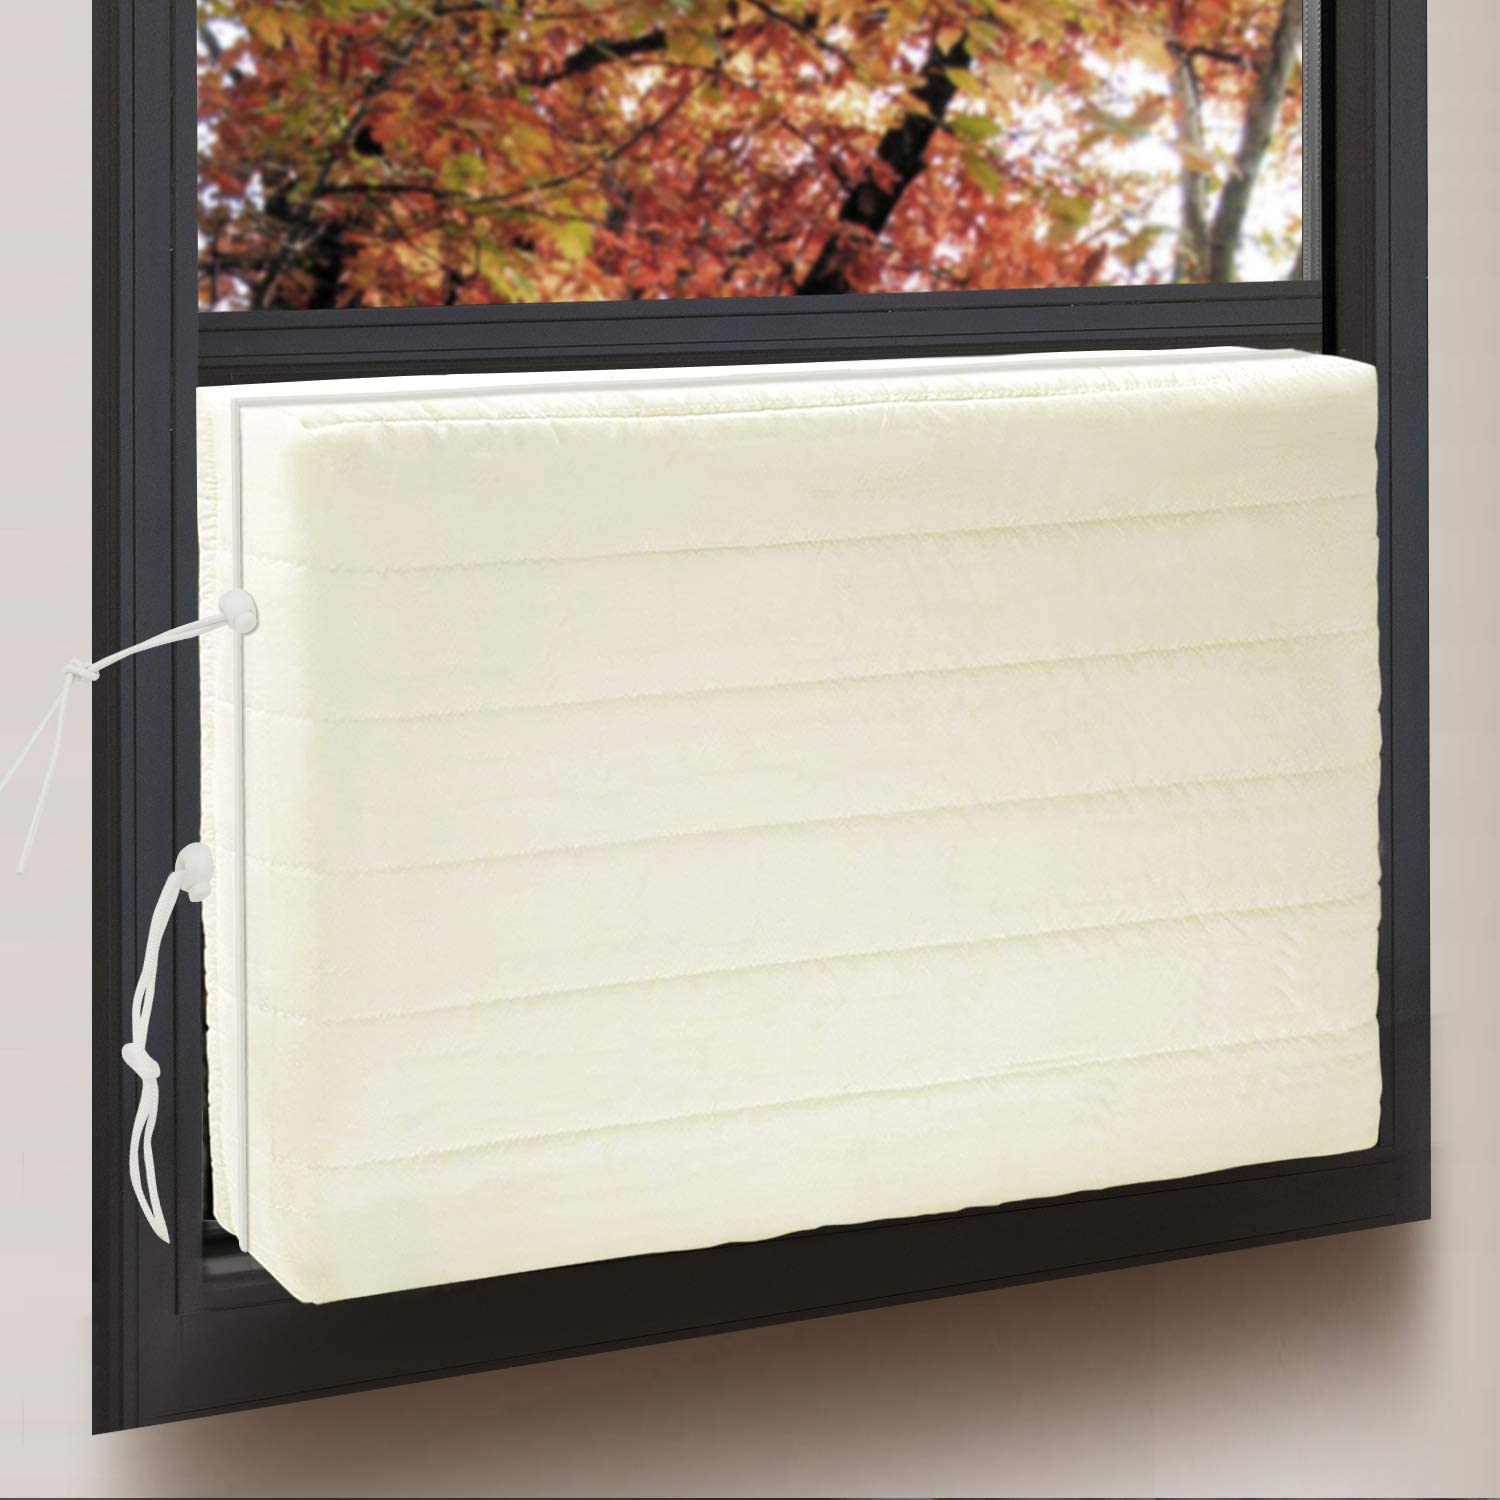 Gissvogeek Indoor Air Conditioner Cover For Window Units Window Ac Unit Cover For Inside L X H X D Double Insulation With Drawstring Xs Beige 17 X 13 X 3 Inches Tools